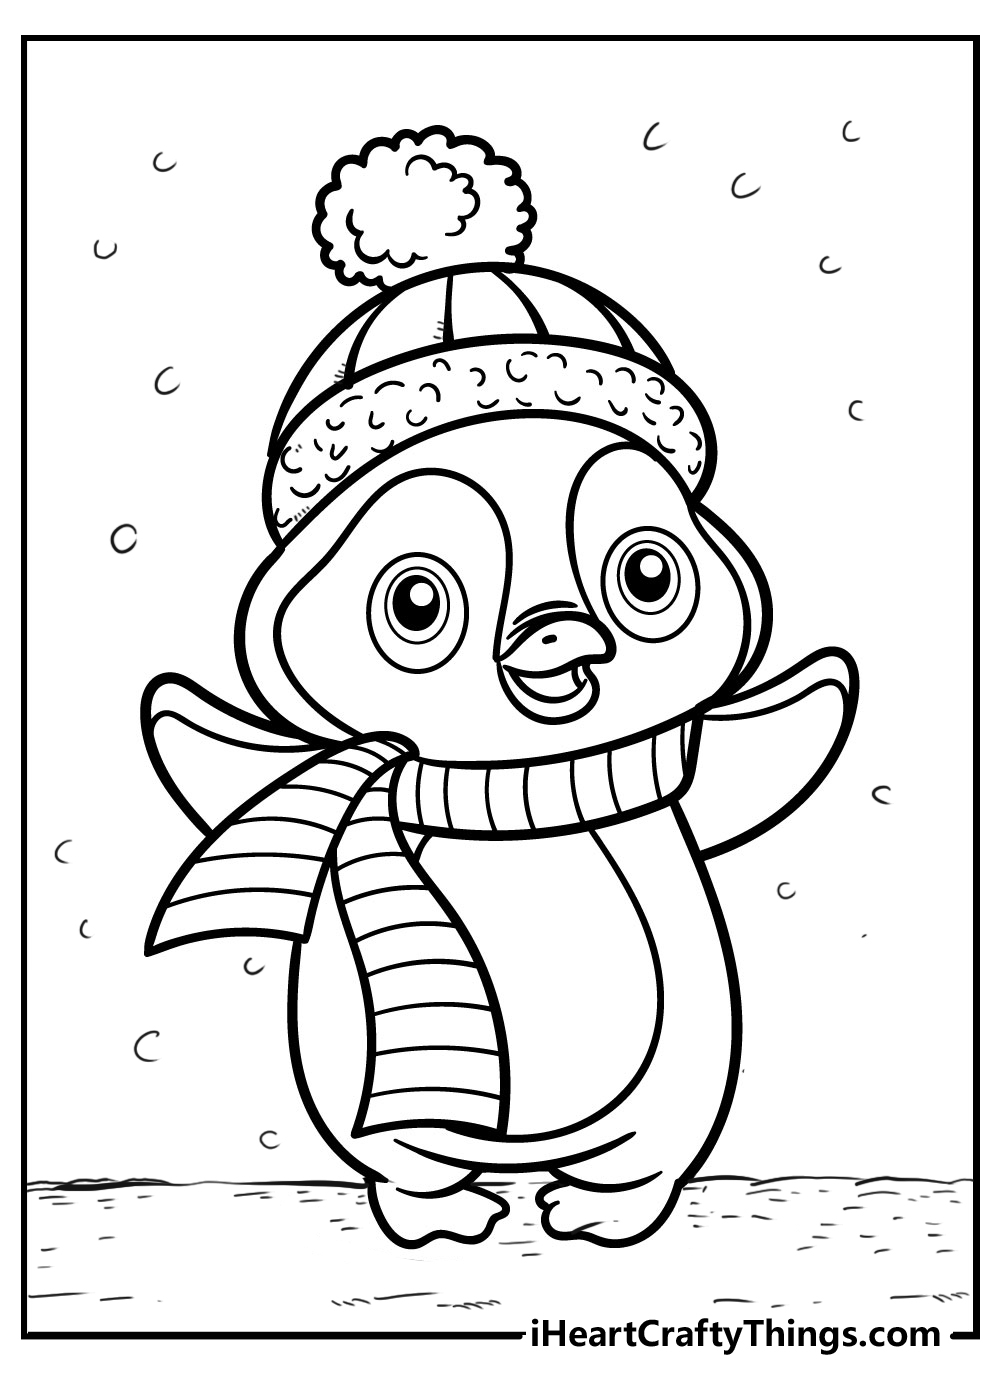 cute penguin colouring pages for kids